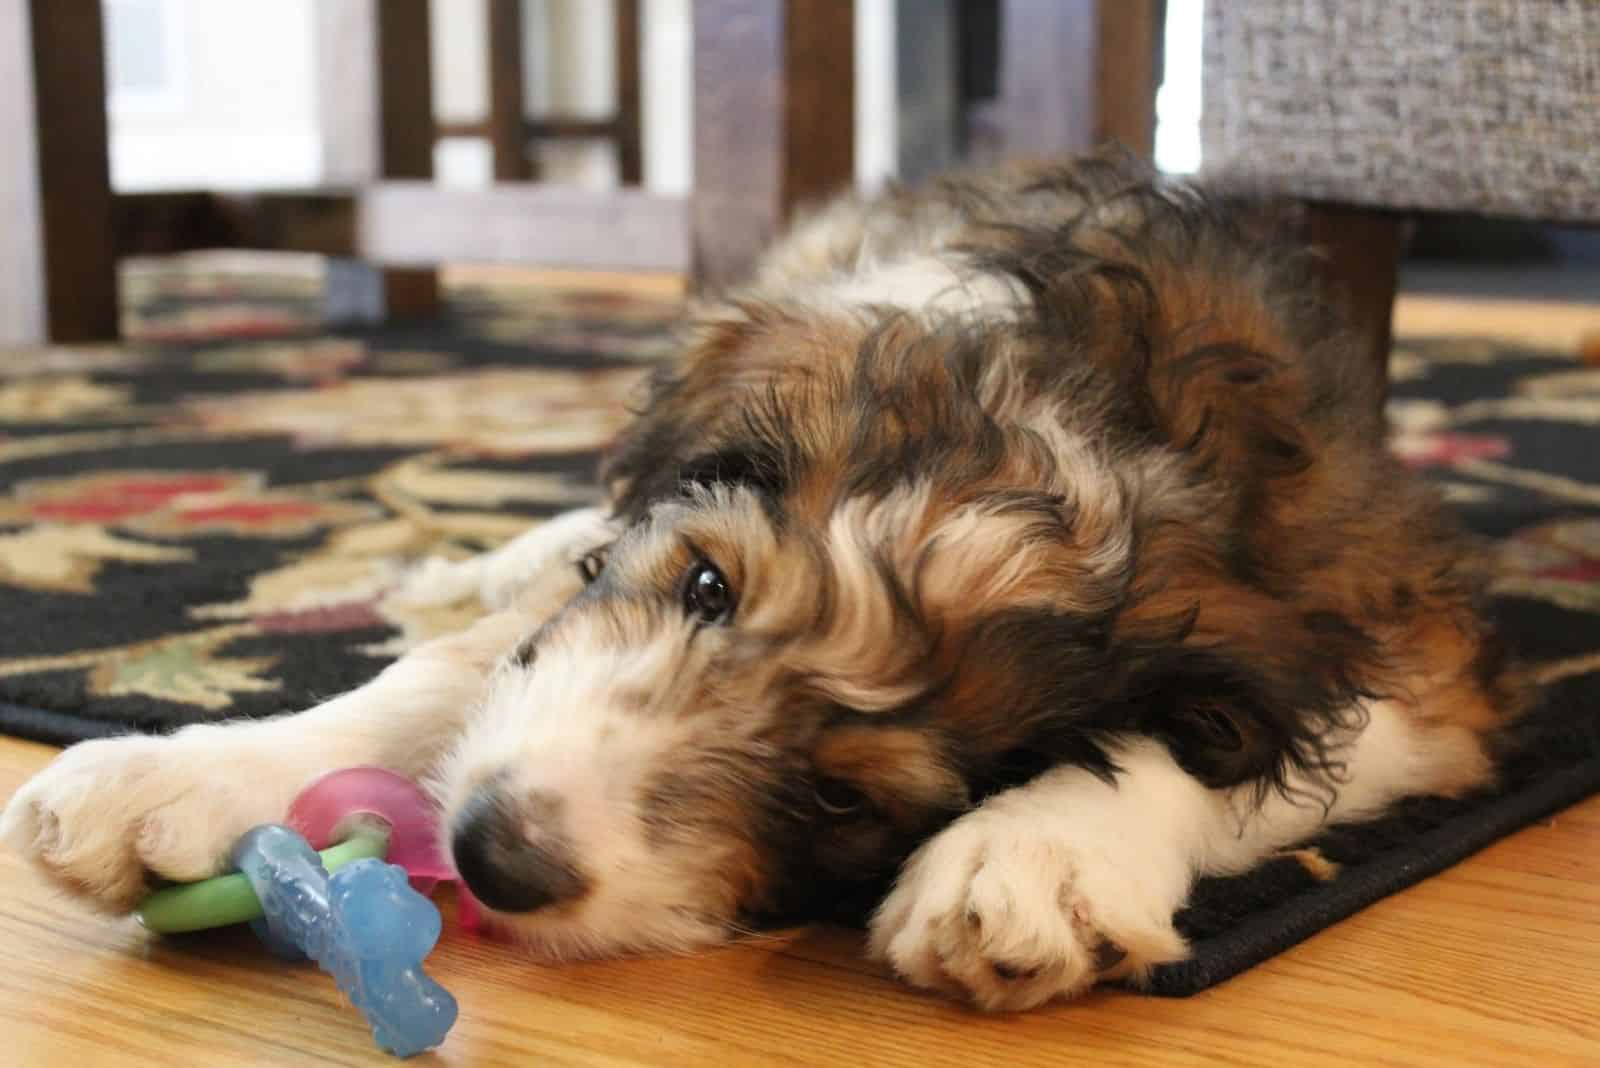 sable bernedoodle puppy playing with toy inside home